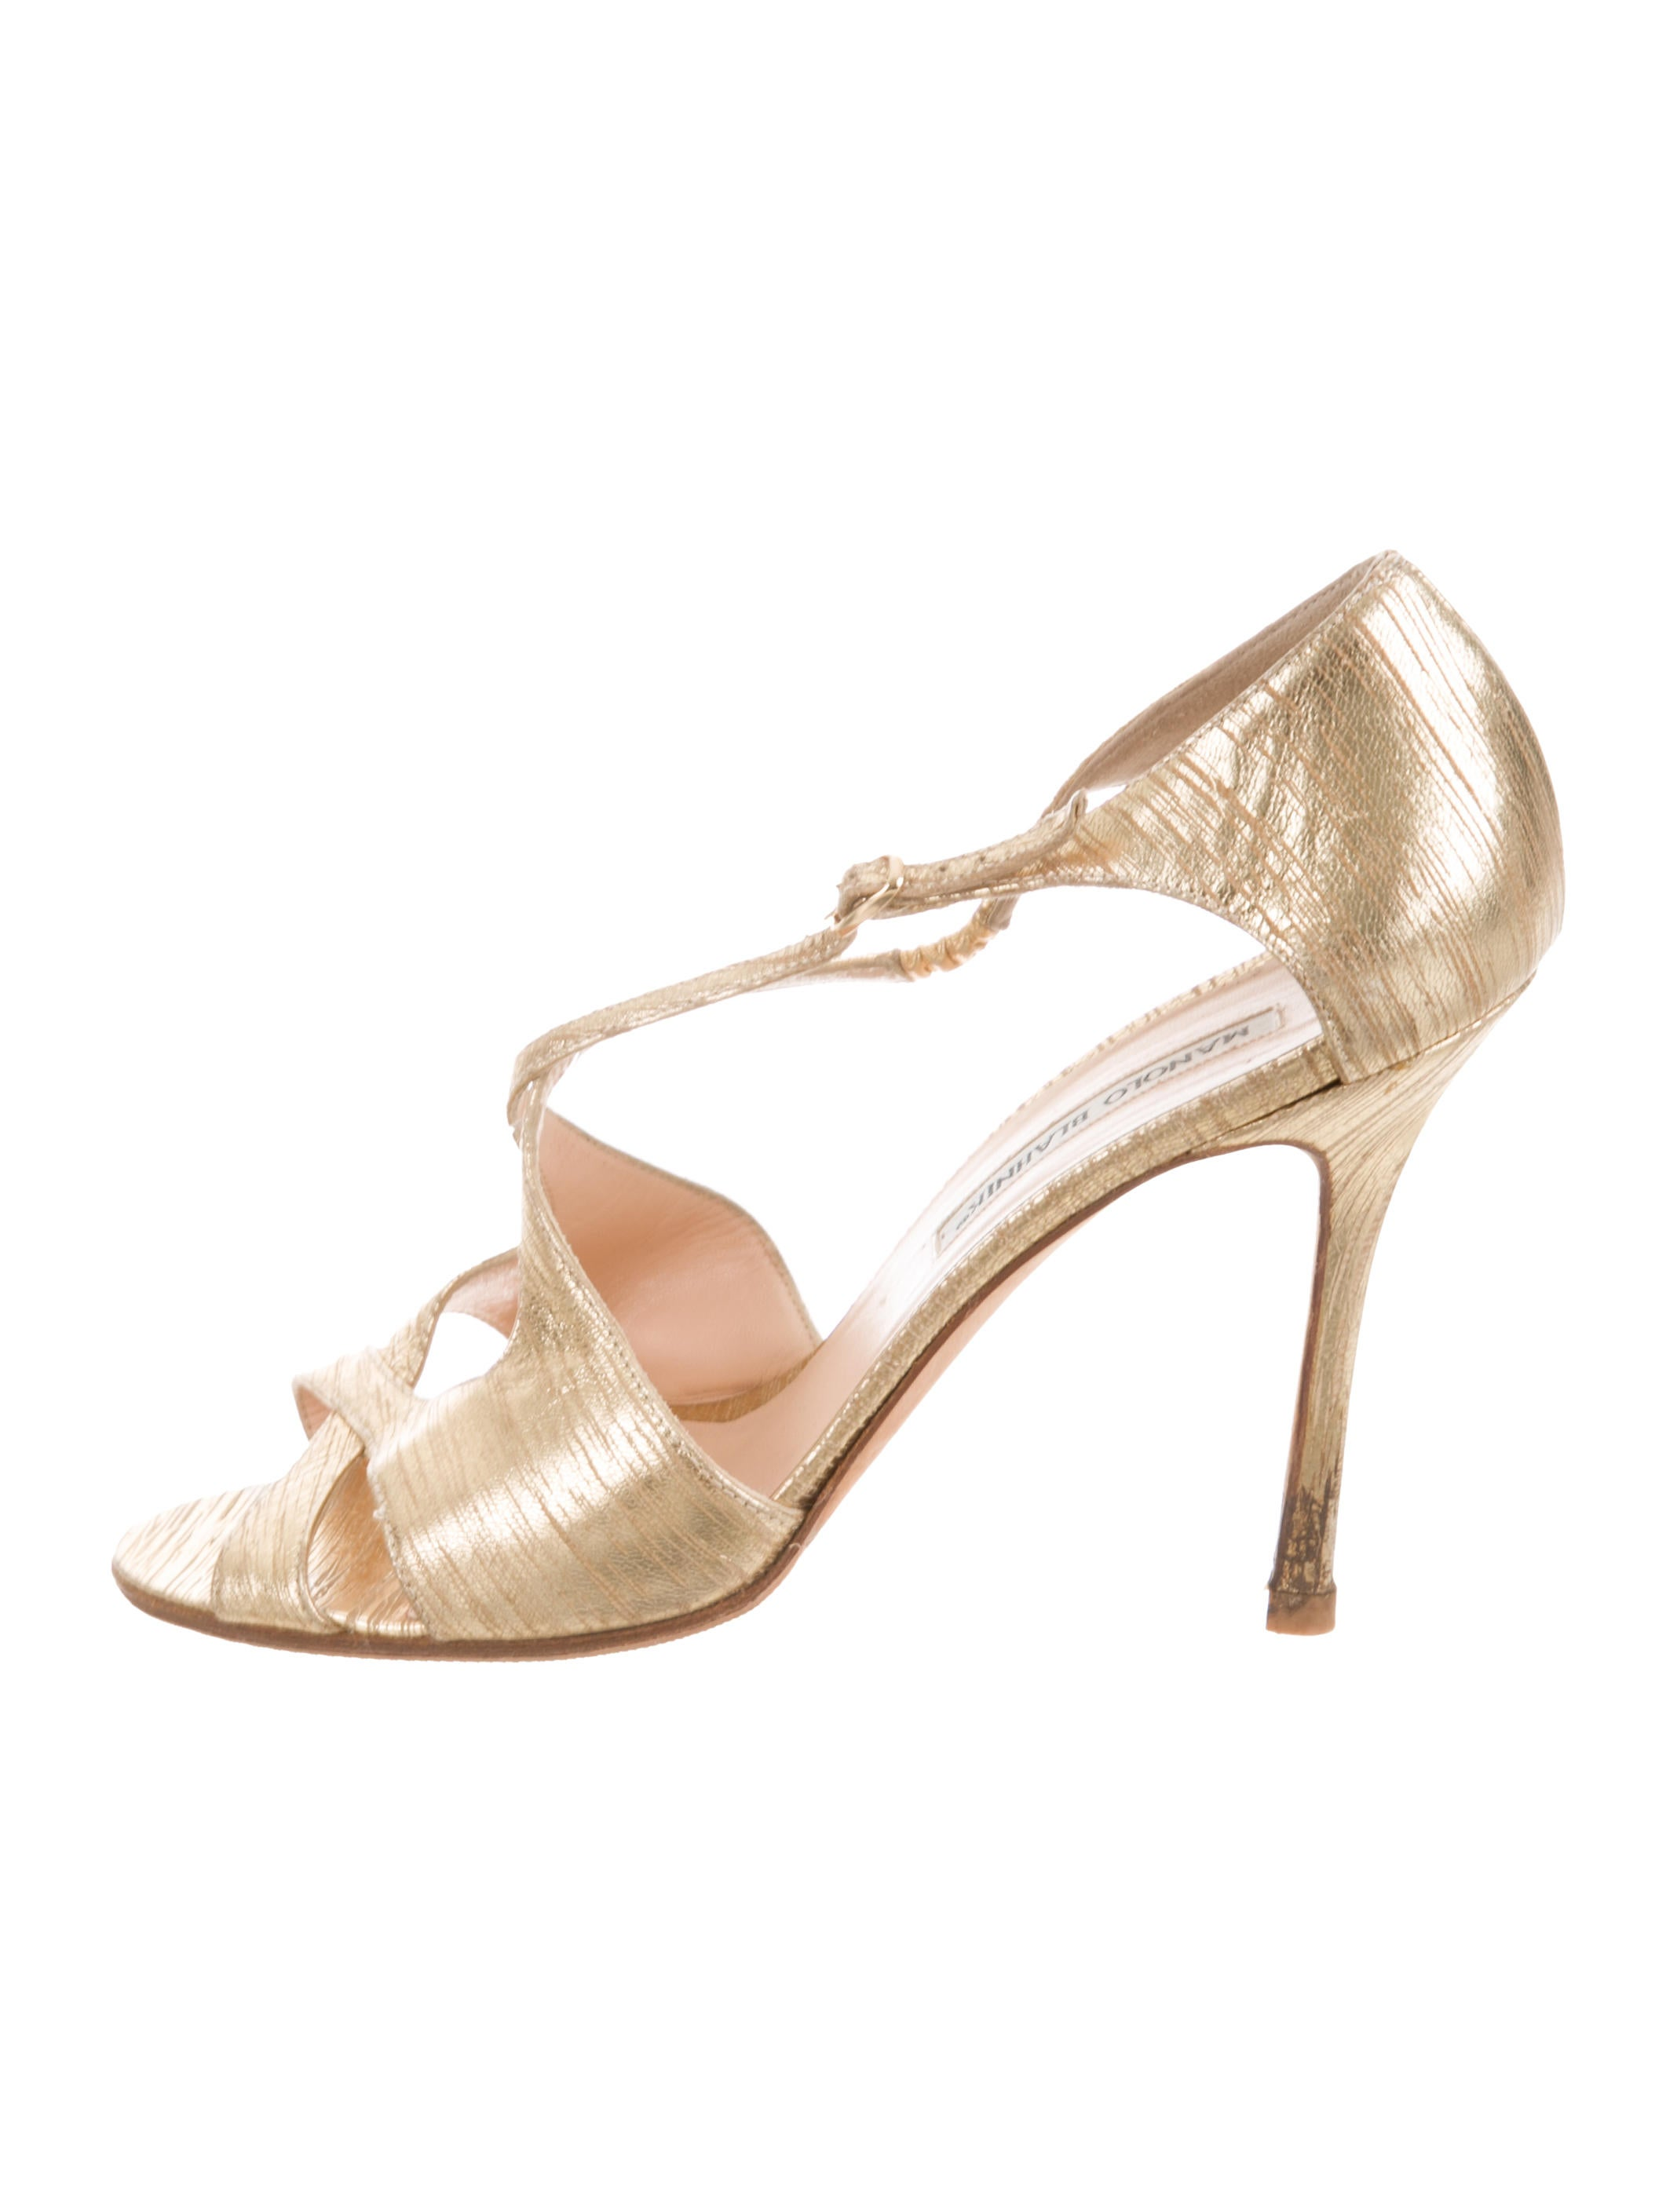 outlet shop fashionable cheap price Manolo Blahnik Leather Crossover Pumps for cheap discount buy cheap 2014 unisex i6jSjUO